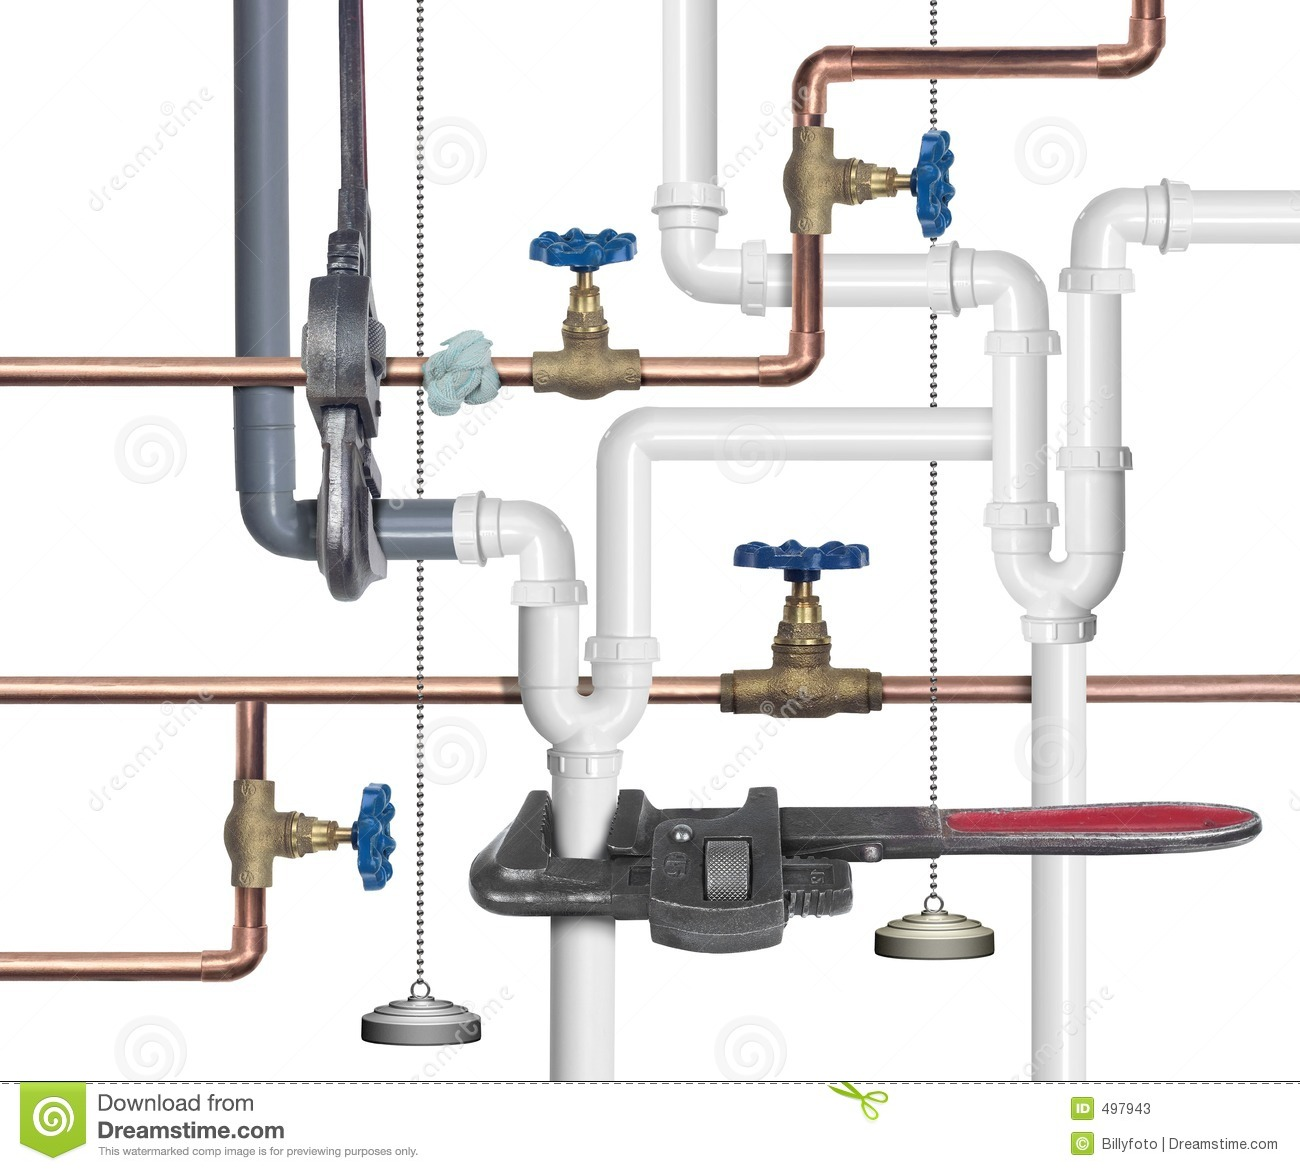 Plumbing Pipes Background